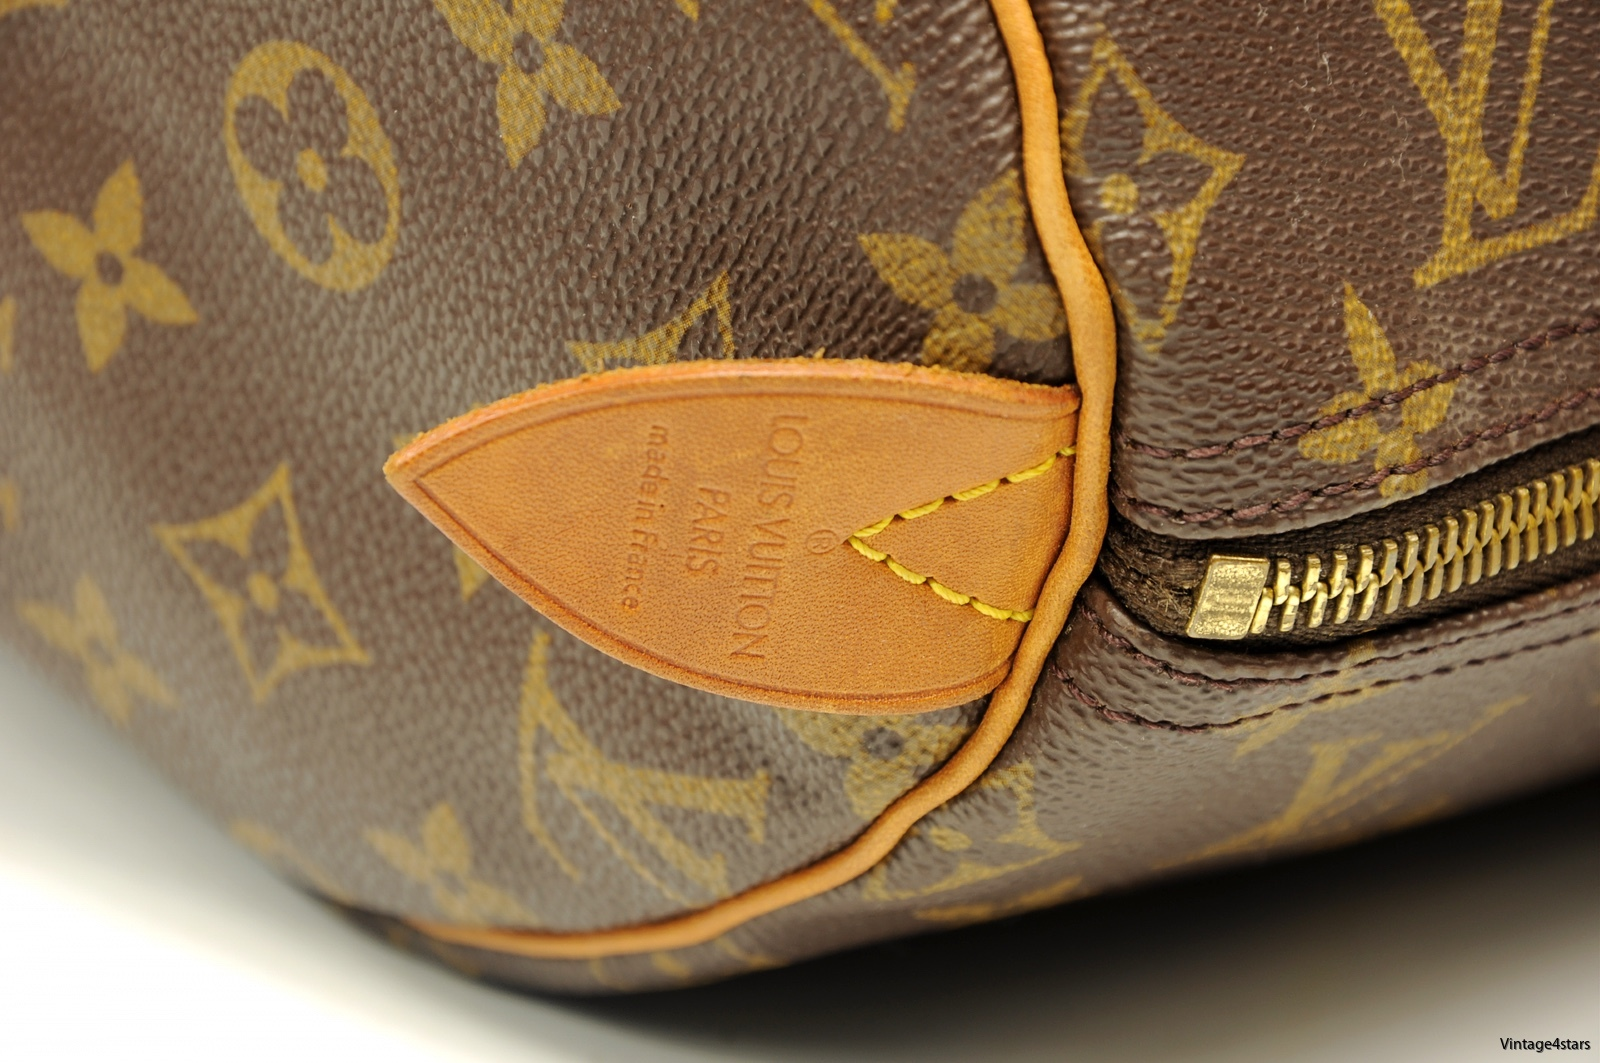 LOUIS VUITTON SPEEDY 40 2